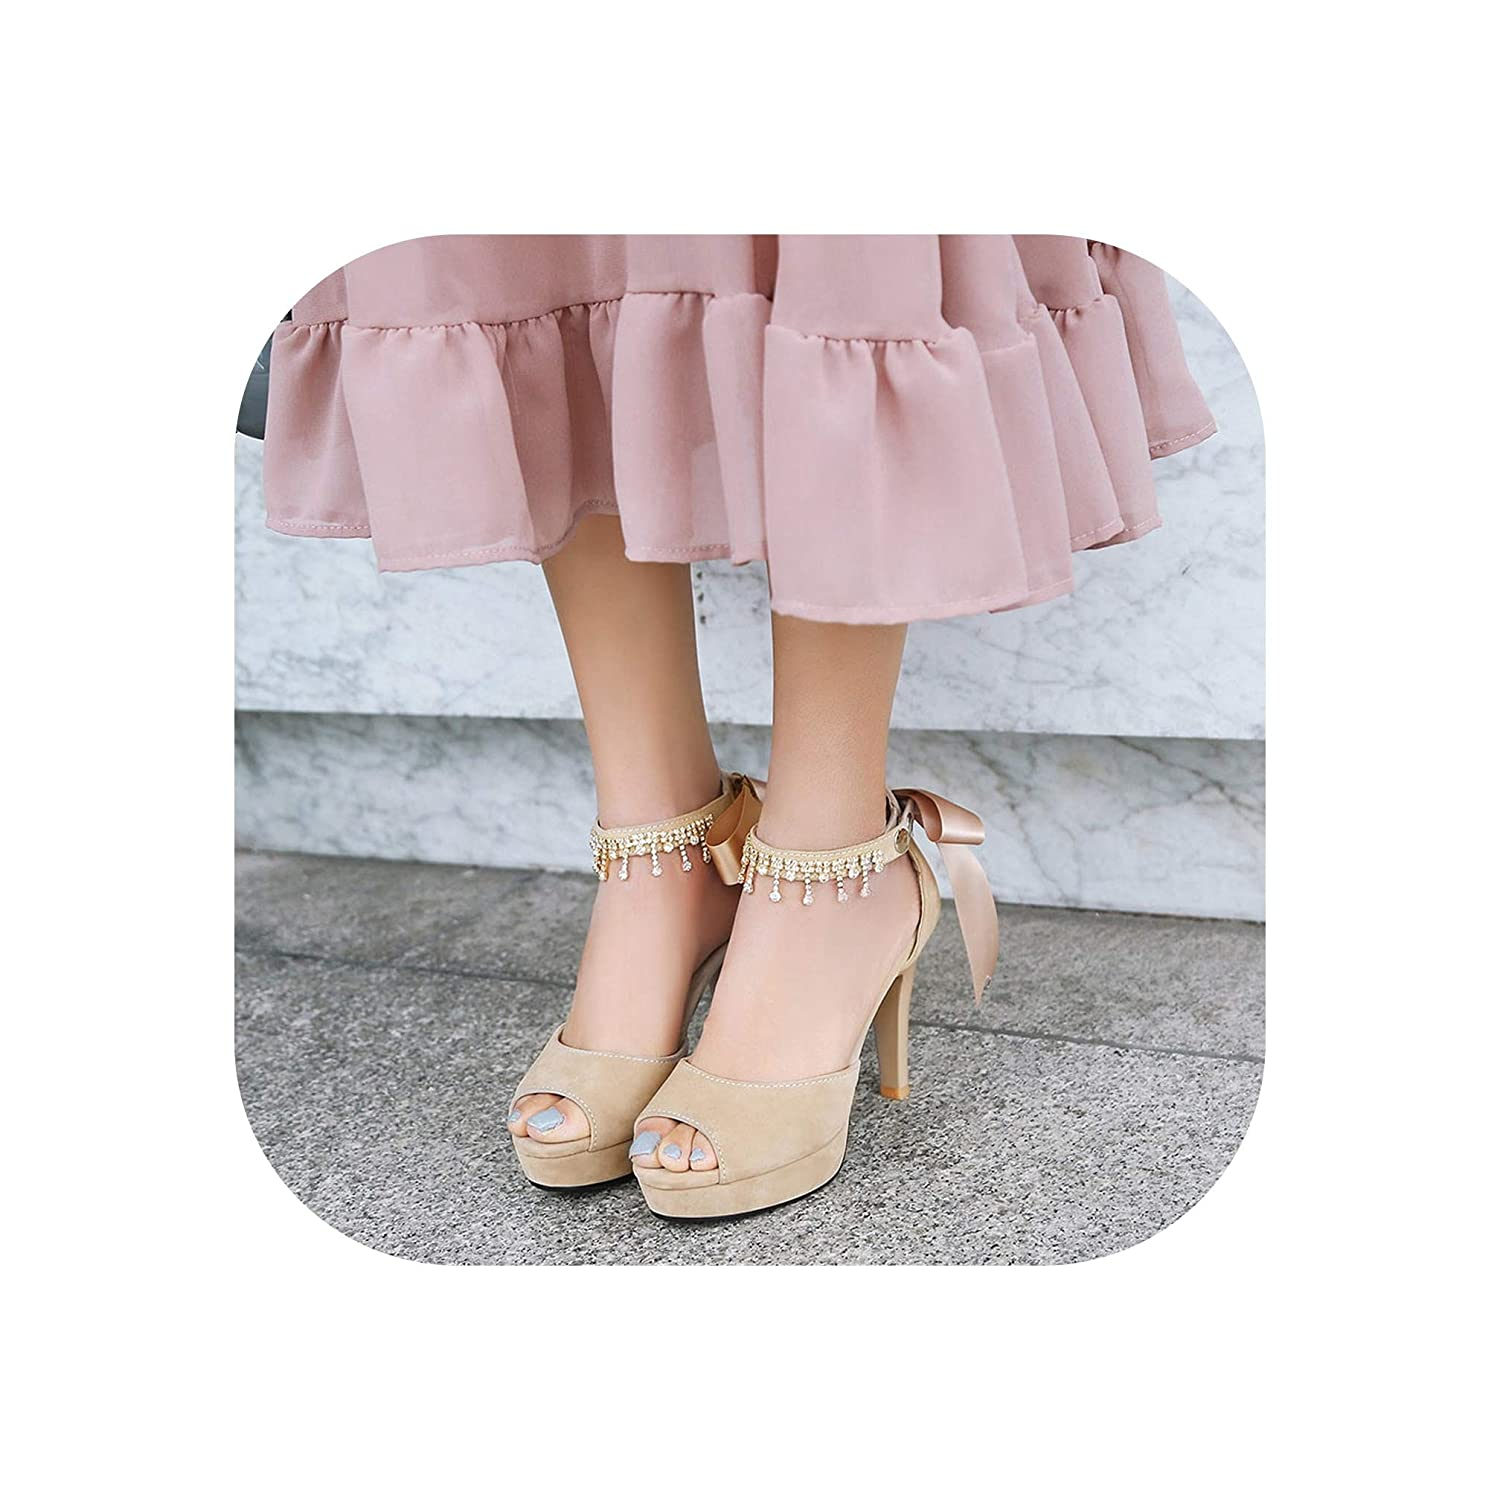 Apricot RuoYuan sandals Thick High Heels Ankle Strap shoes Woman High Heels Peep Toe Platform Women's shoes